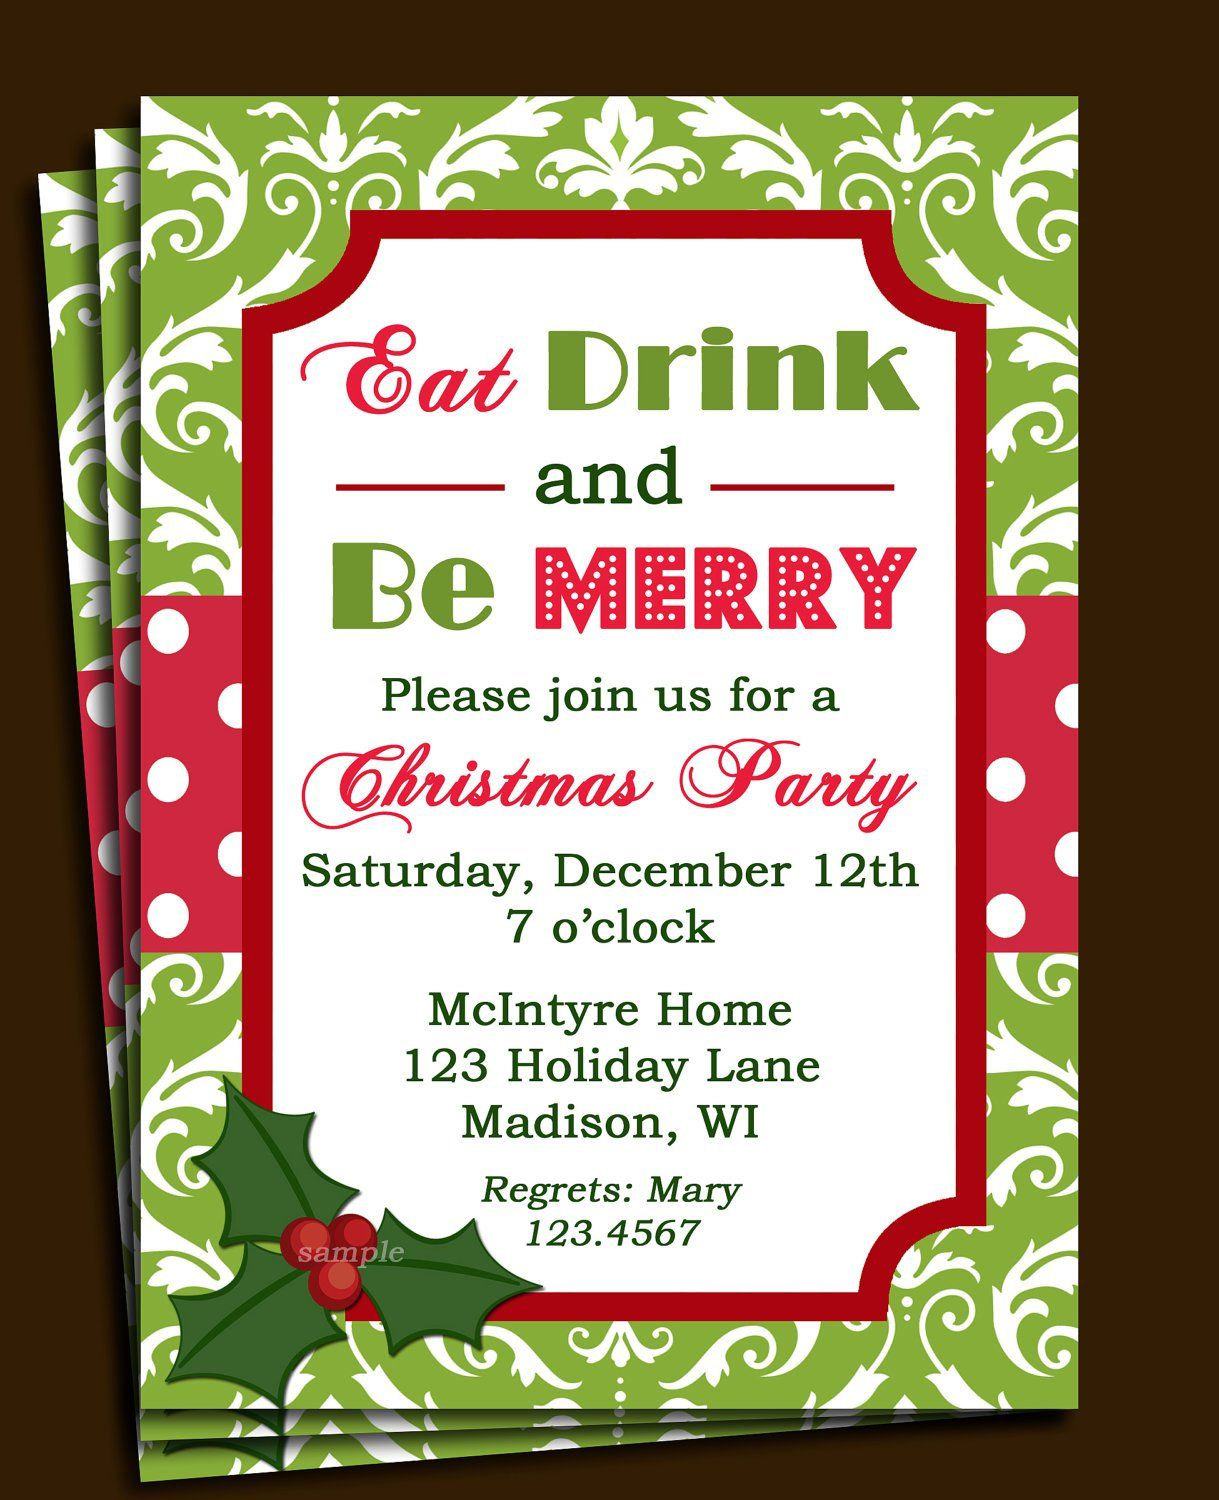 Invitation Letter Sample With Rsvp | Party invitations | Pinterest ...